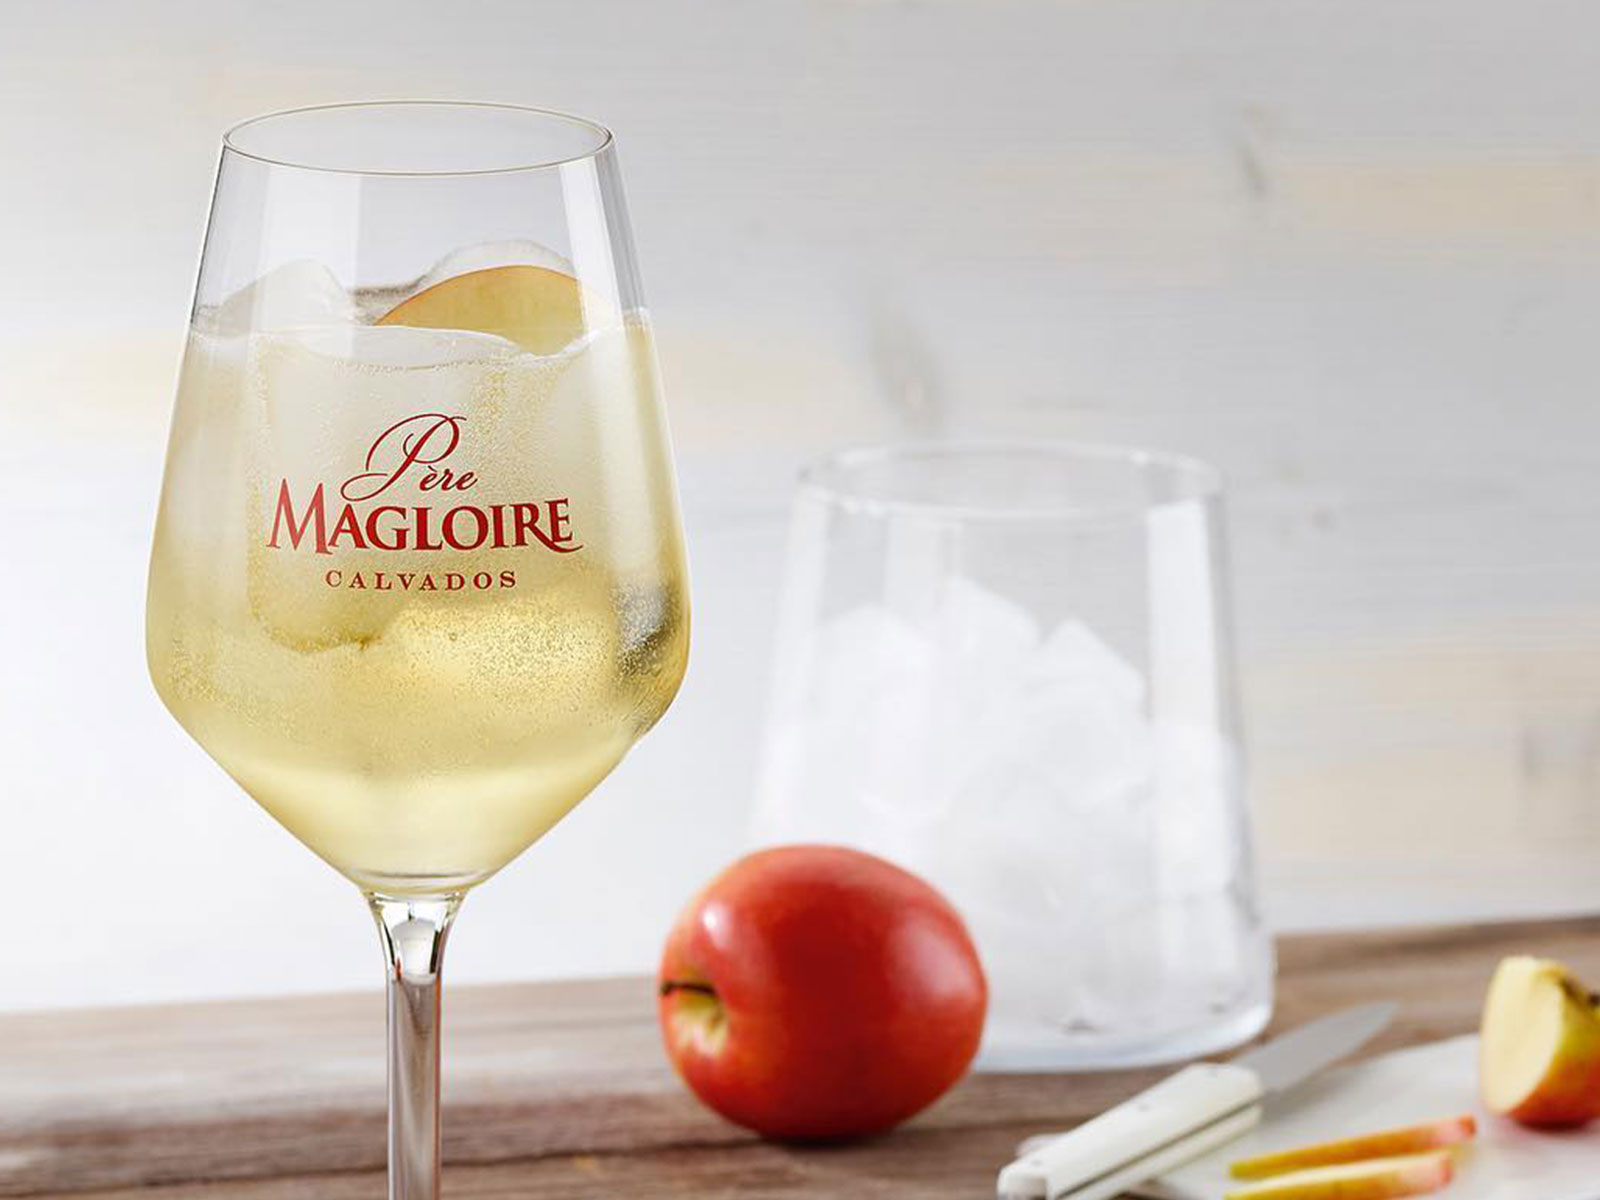 CALVADOS & TONIC - PÈRE MAGLOIRE CALVADOS: Celebrate the Normandy annual apple harvest and learn how to make the Père Magloire Calvados & Tonic. 50ml Père Magloire V.S.O.P., top with a premium quality tonic water and garnish with a fresh slice of apple …enjoy!